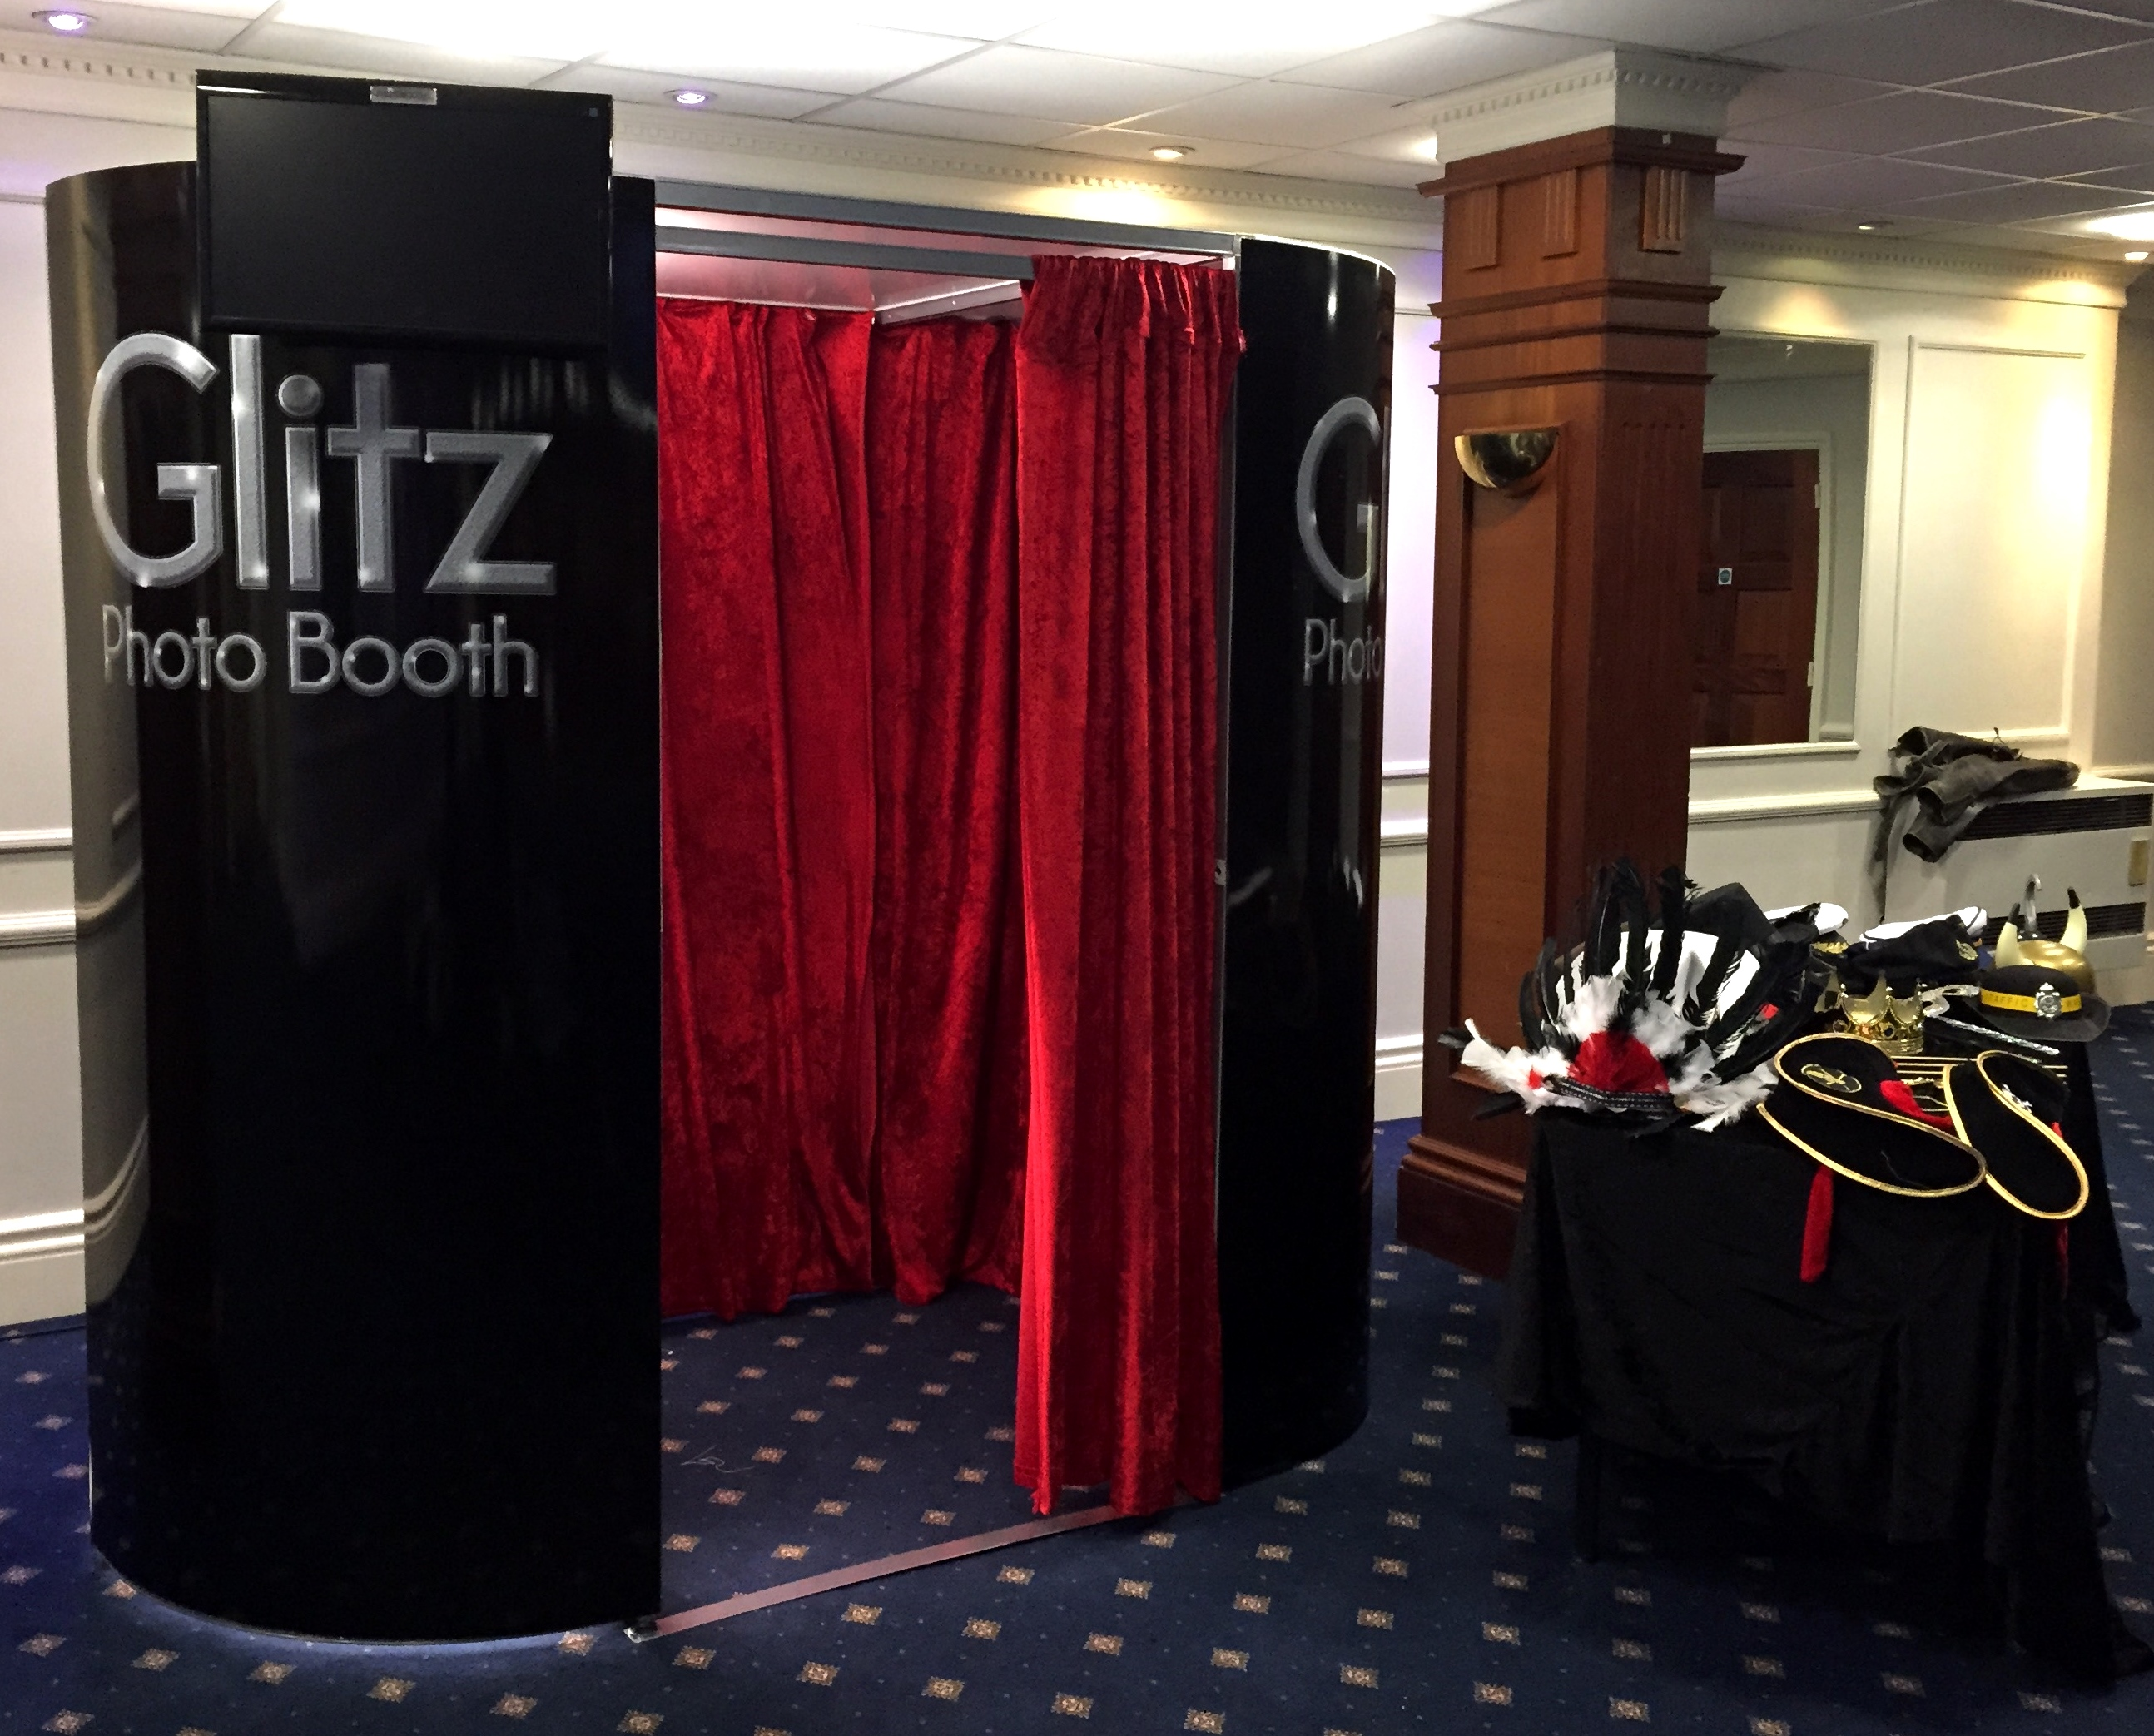 Black Booth with Red Curtains